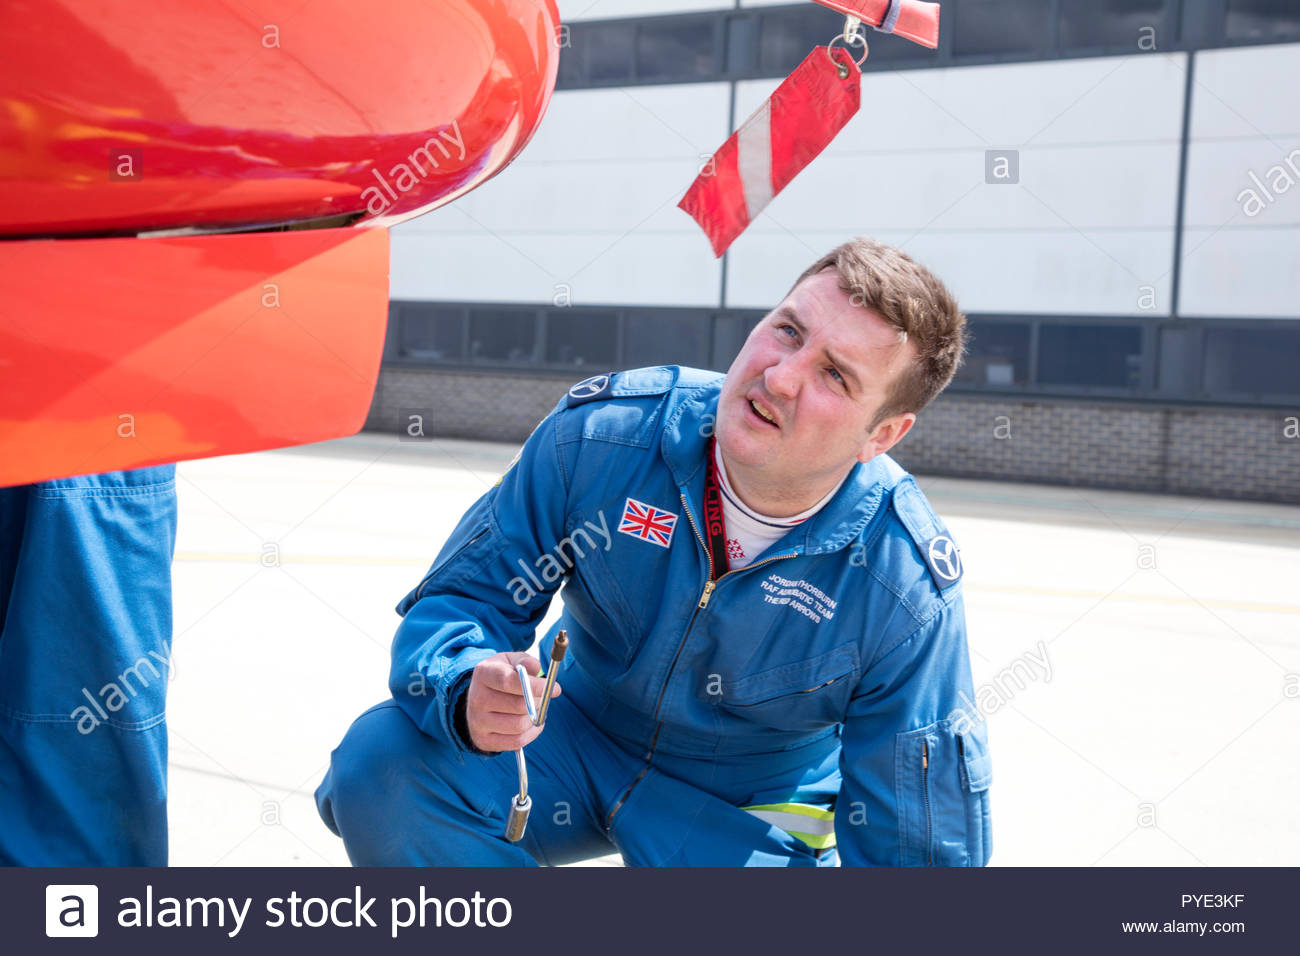 Man holding tool crouched by Red Arrows airplane on RAF Scrampton, UK - Stock Image